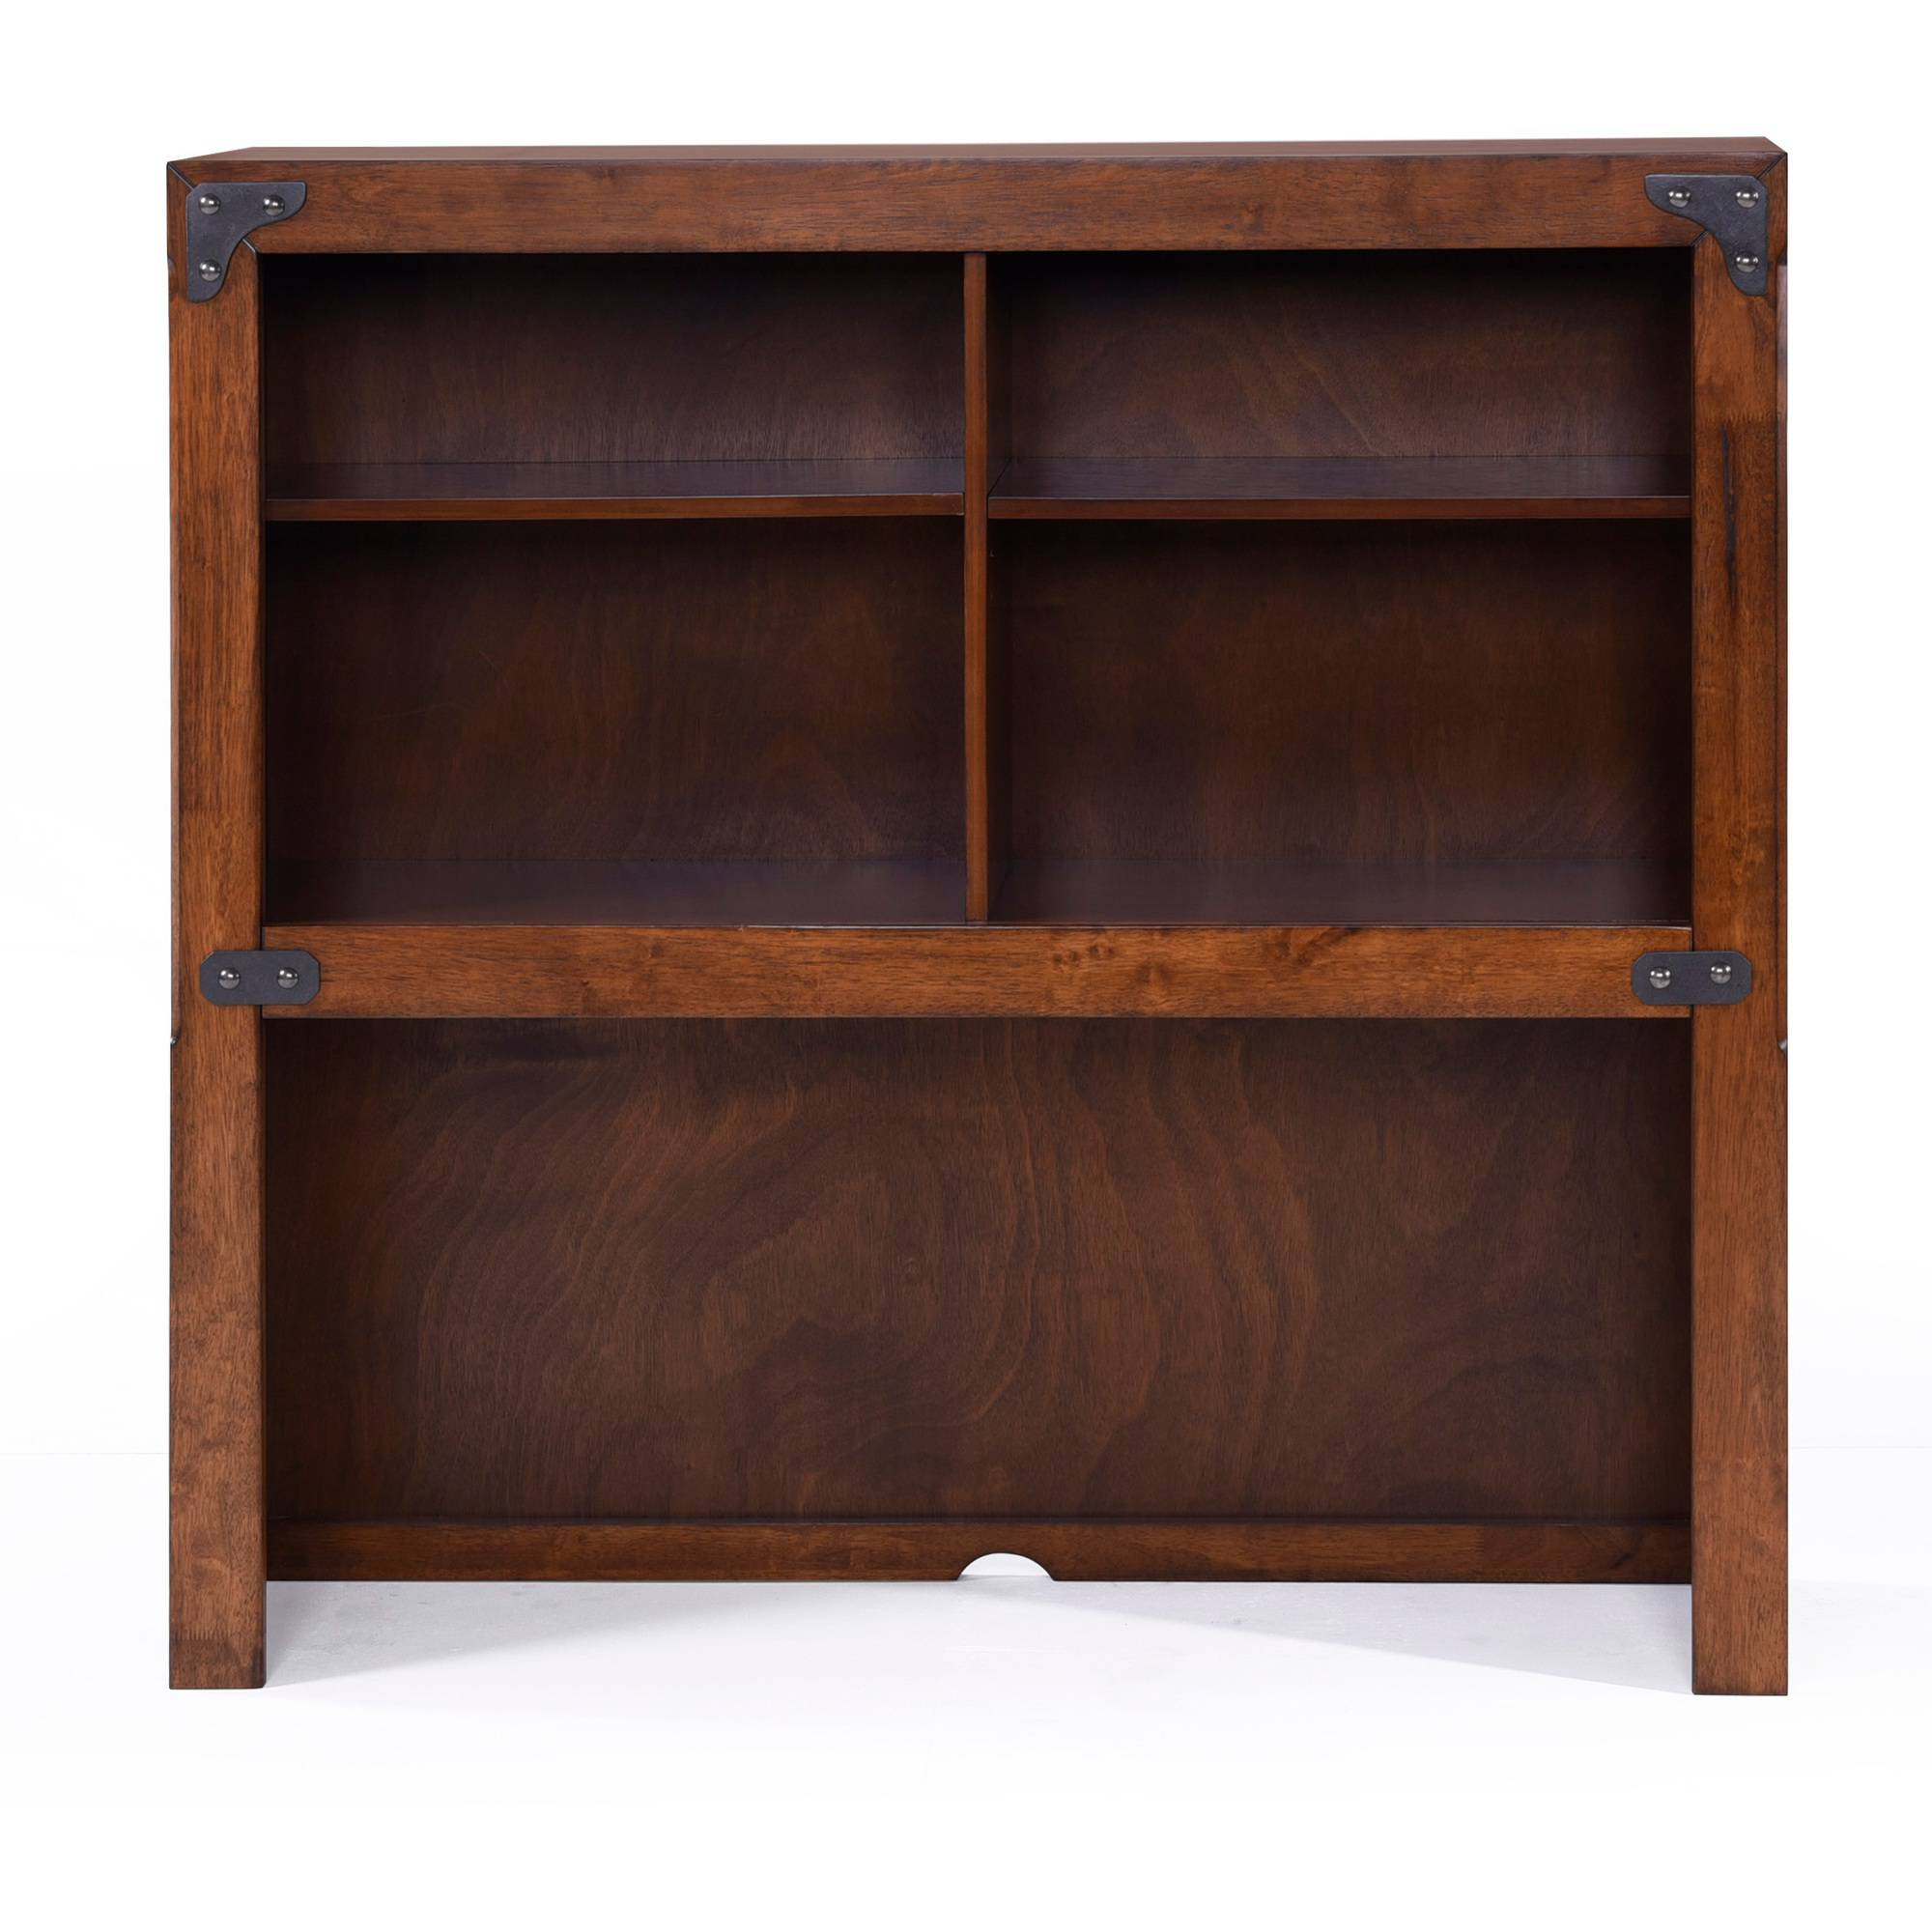 Better Homes and Gardens Kids Union Station Hutch, Rustic Cherry